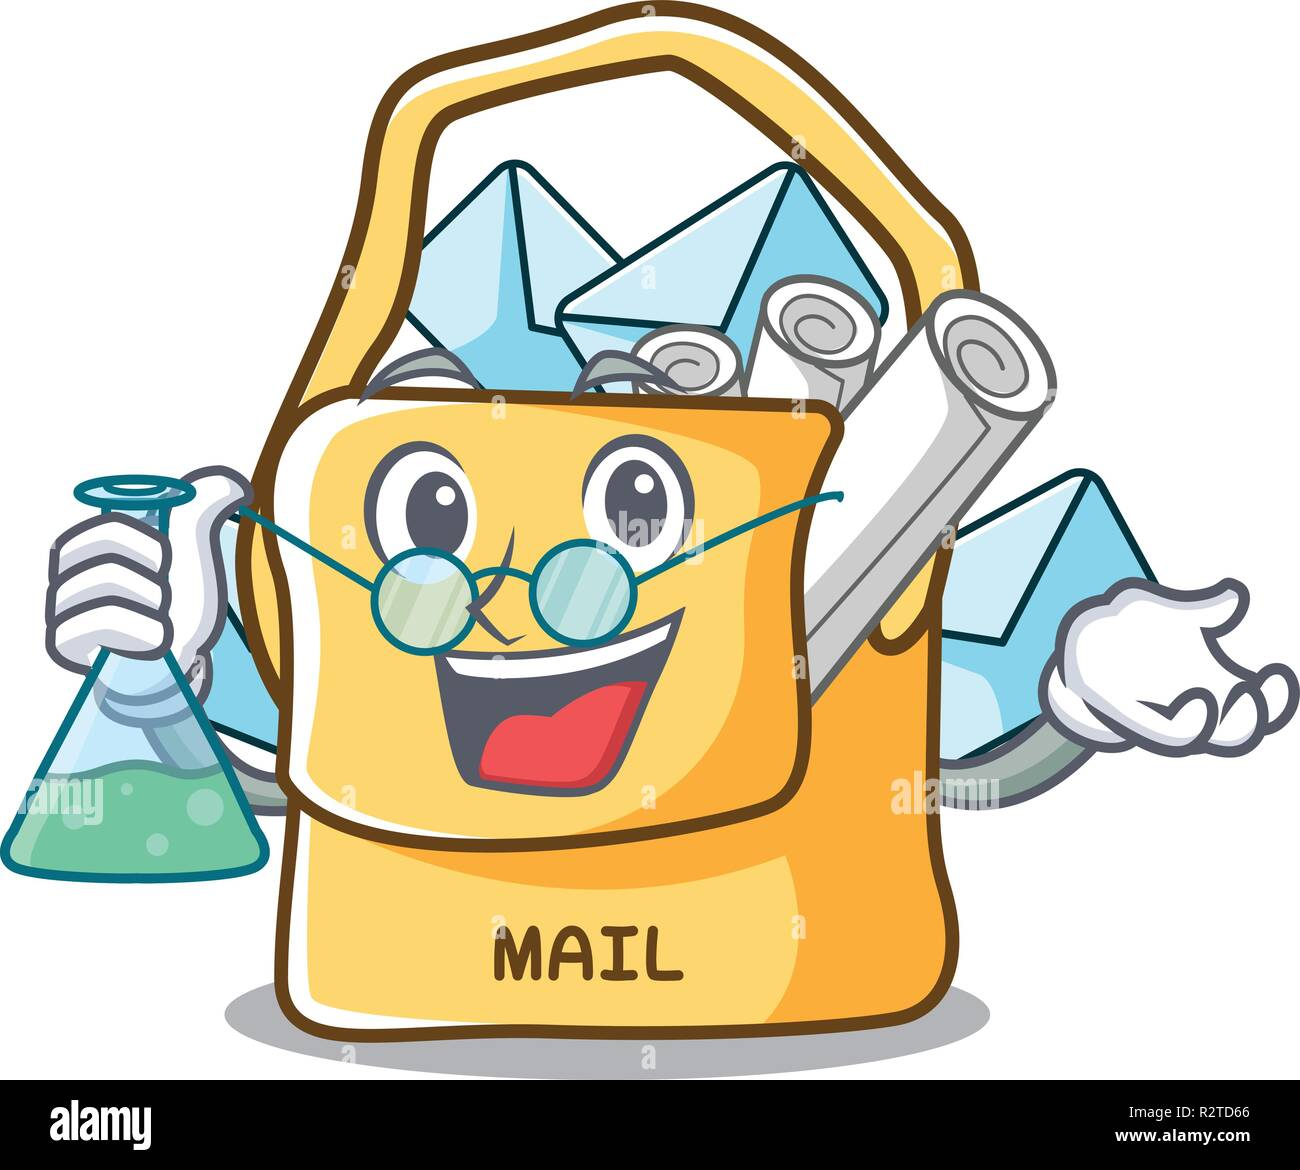 Professor the bag with shape mail cartoon - Stock Vector